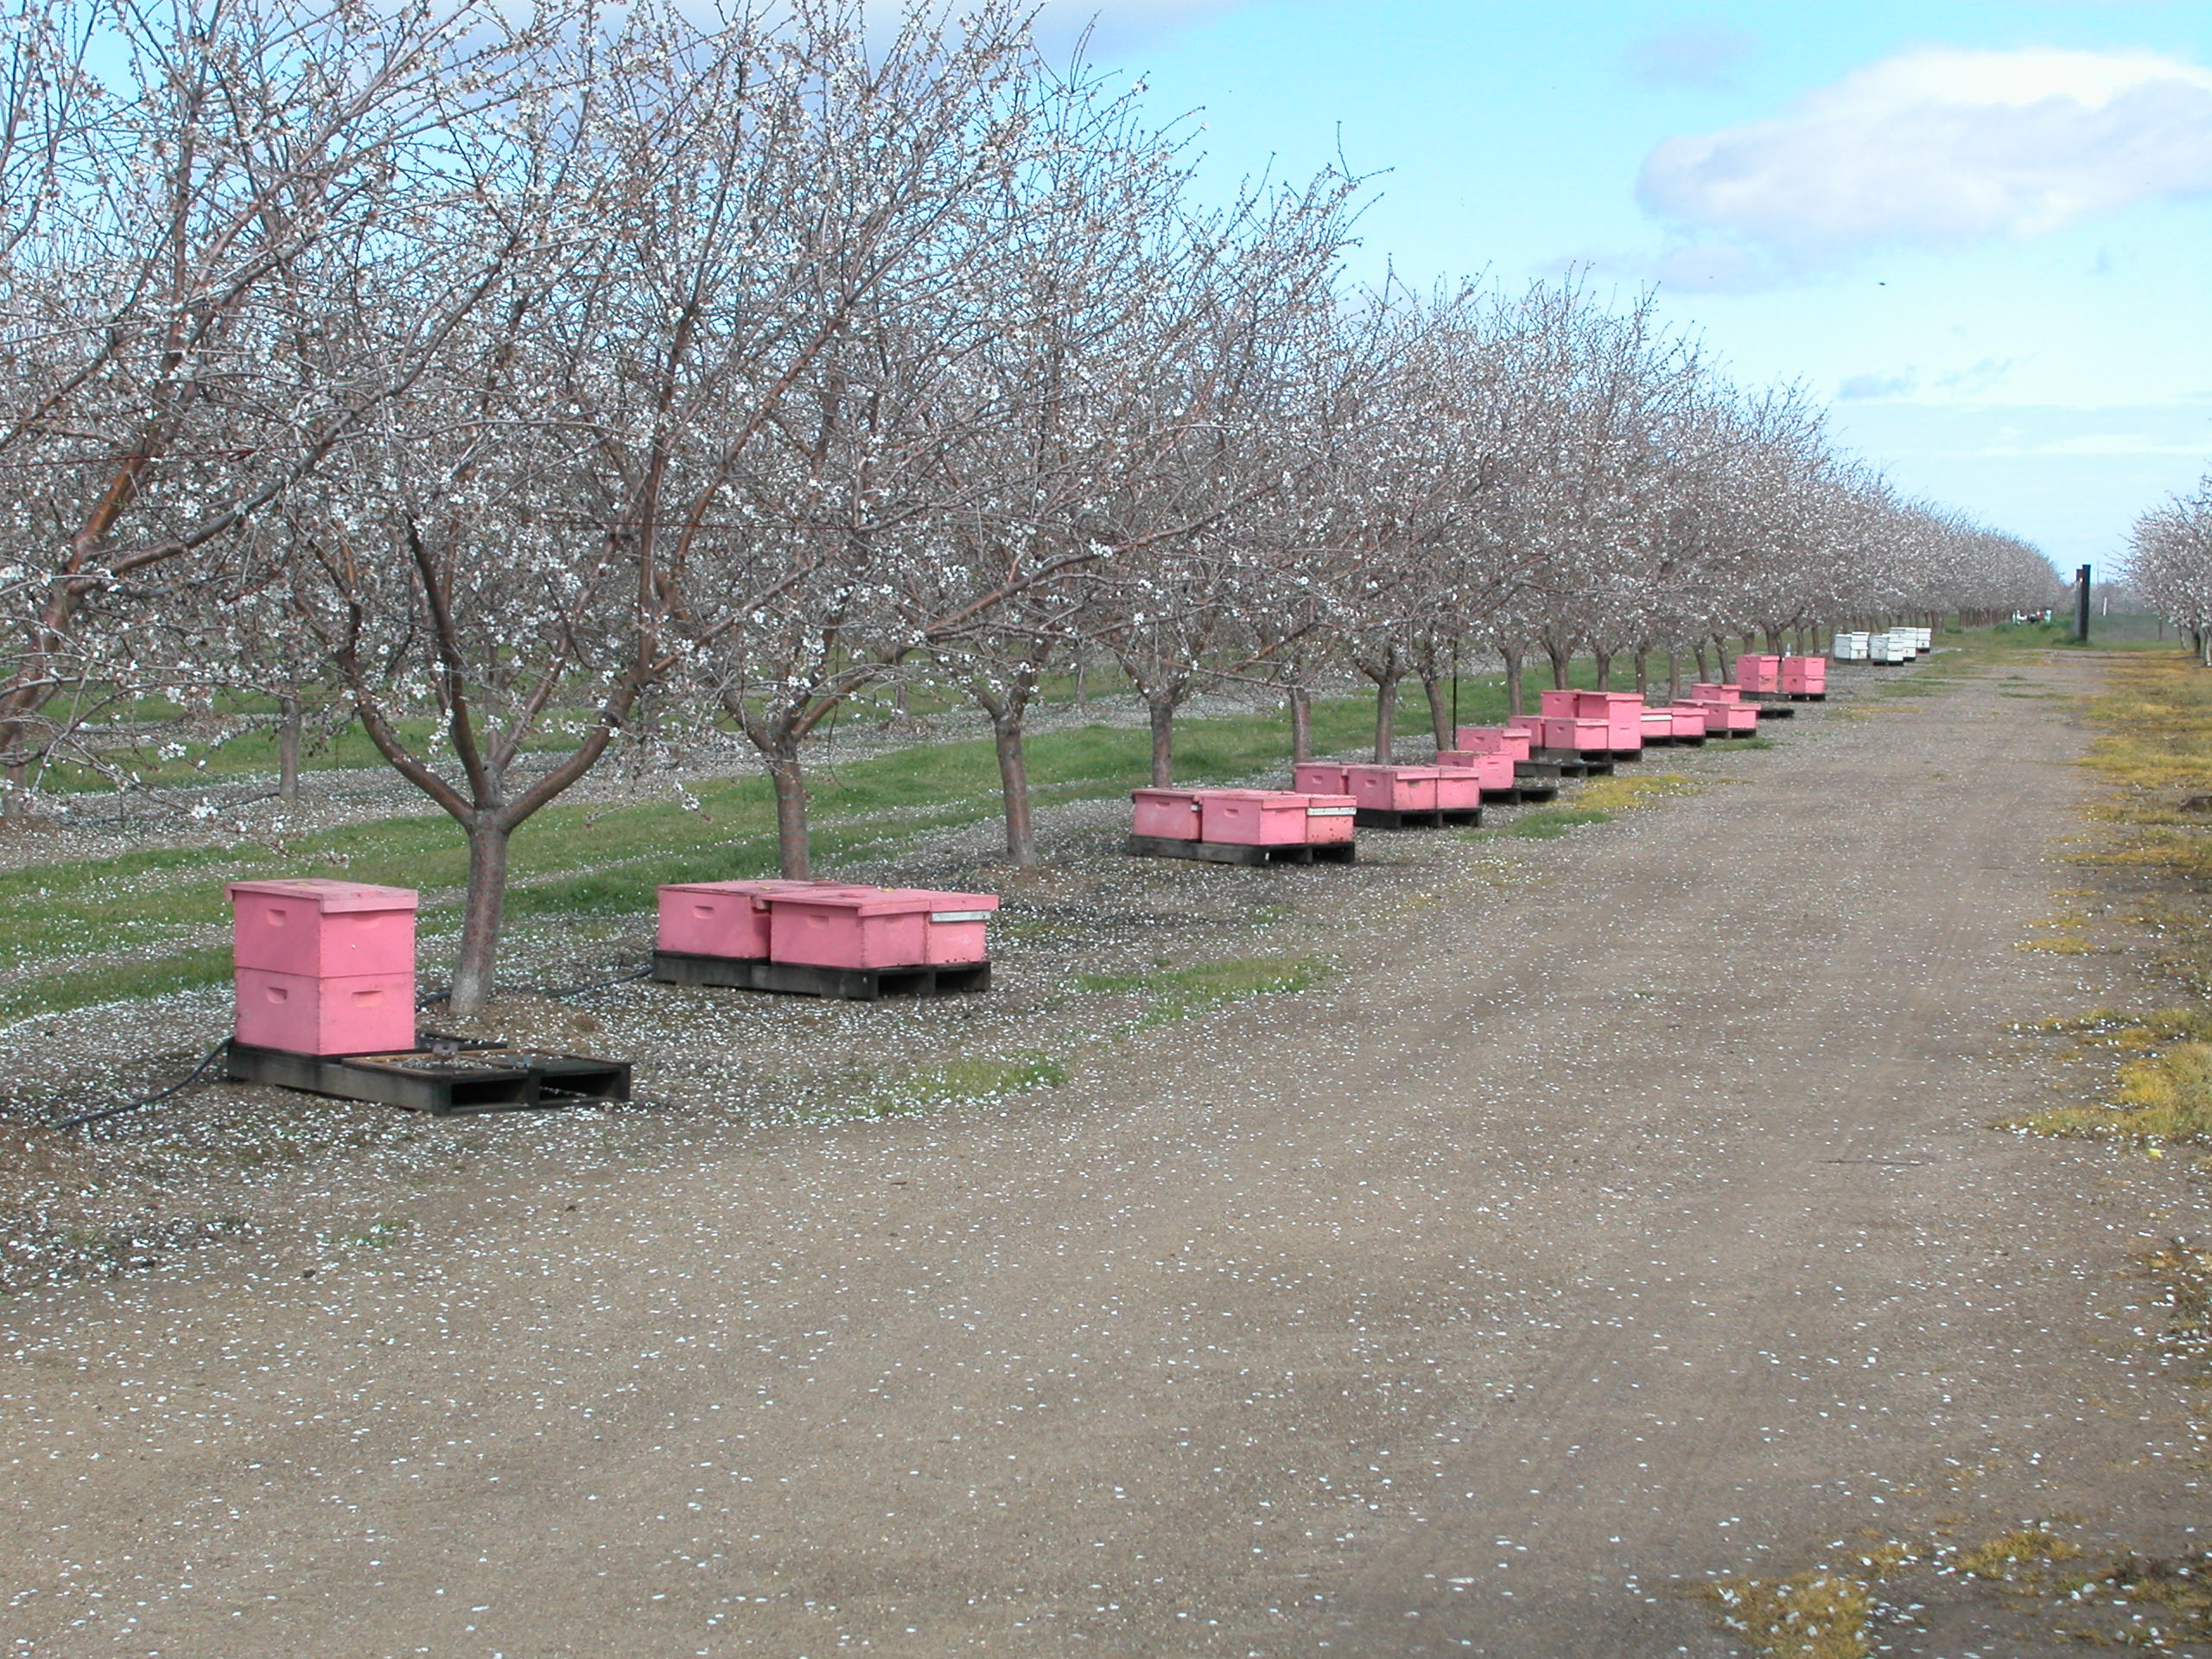 1.5 million honey bee colonies are needed to pollinate almond in CA